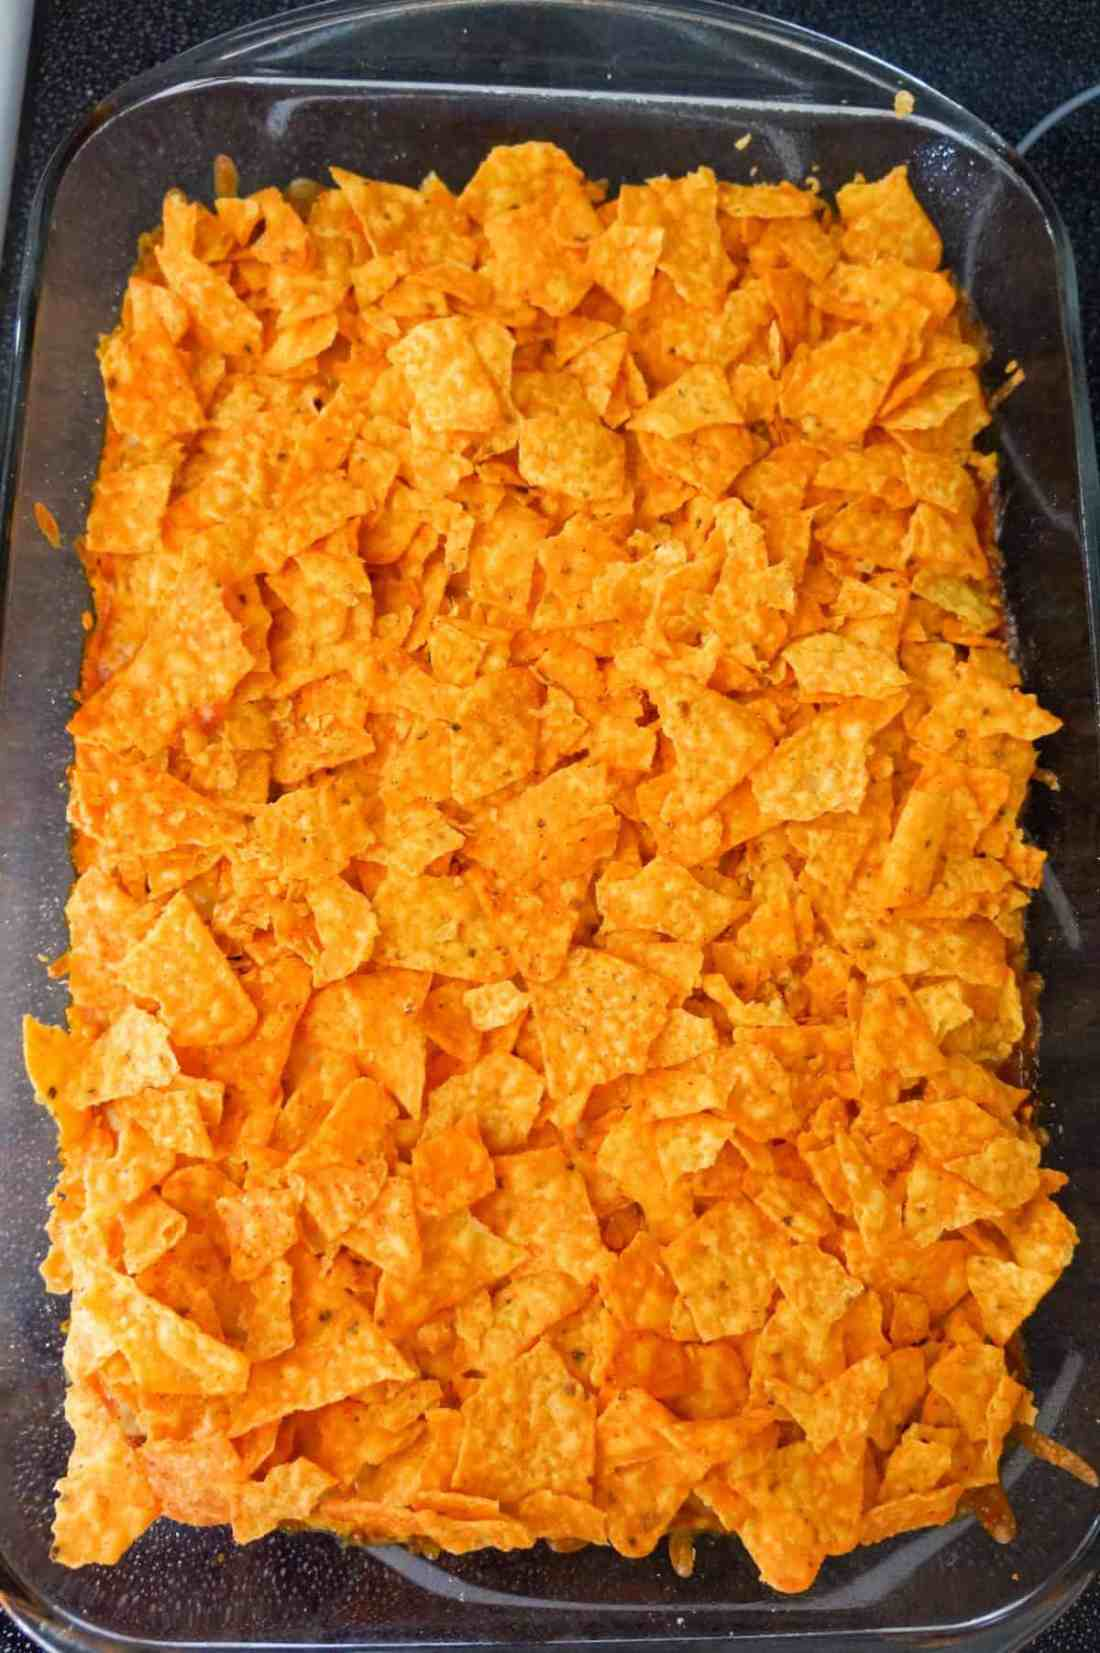 crumbled Doritos on top of chili pie